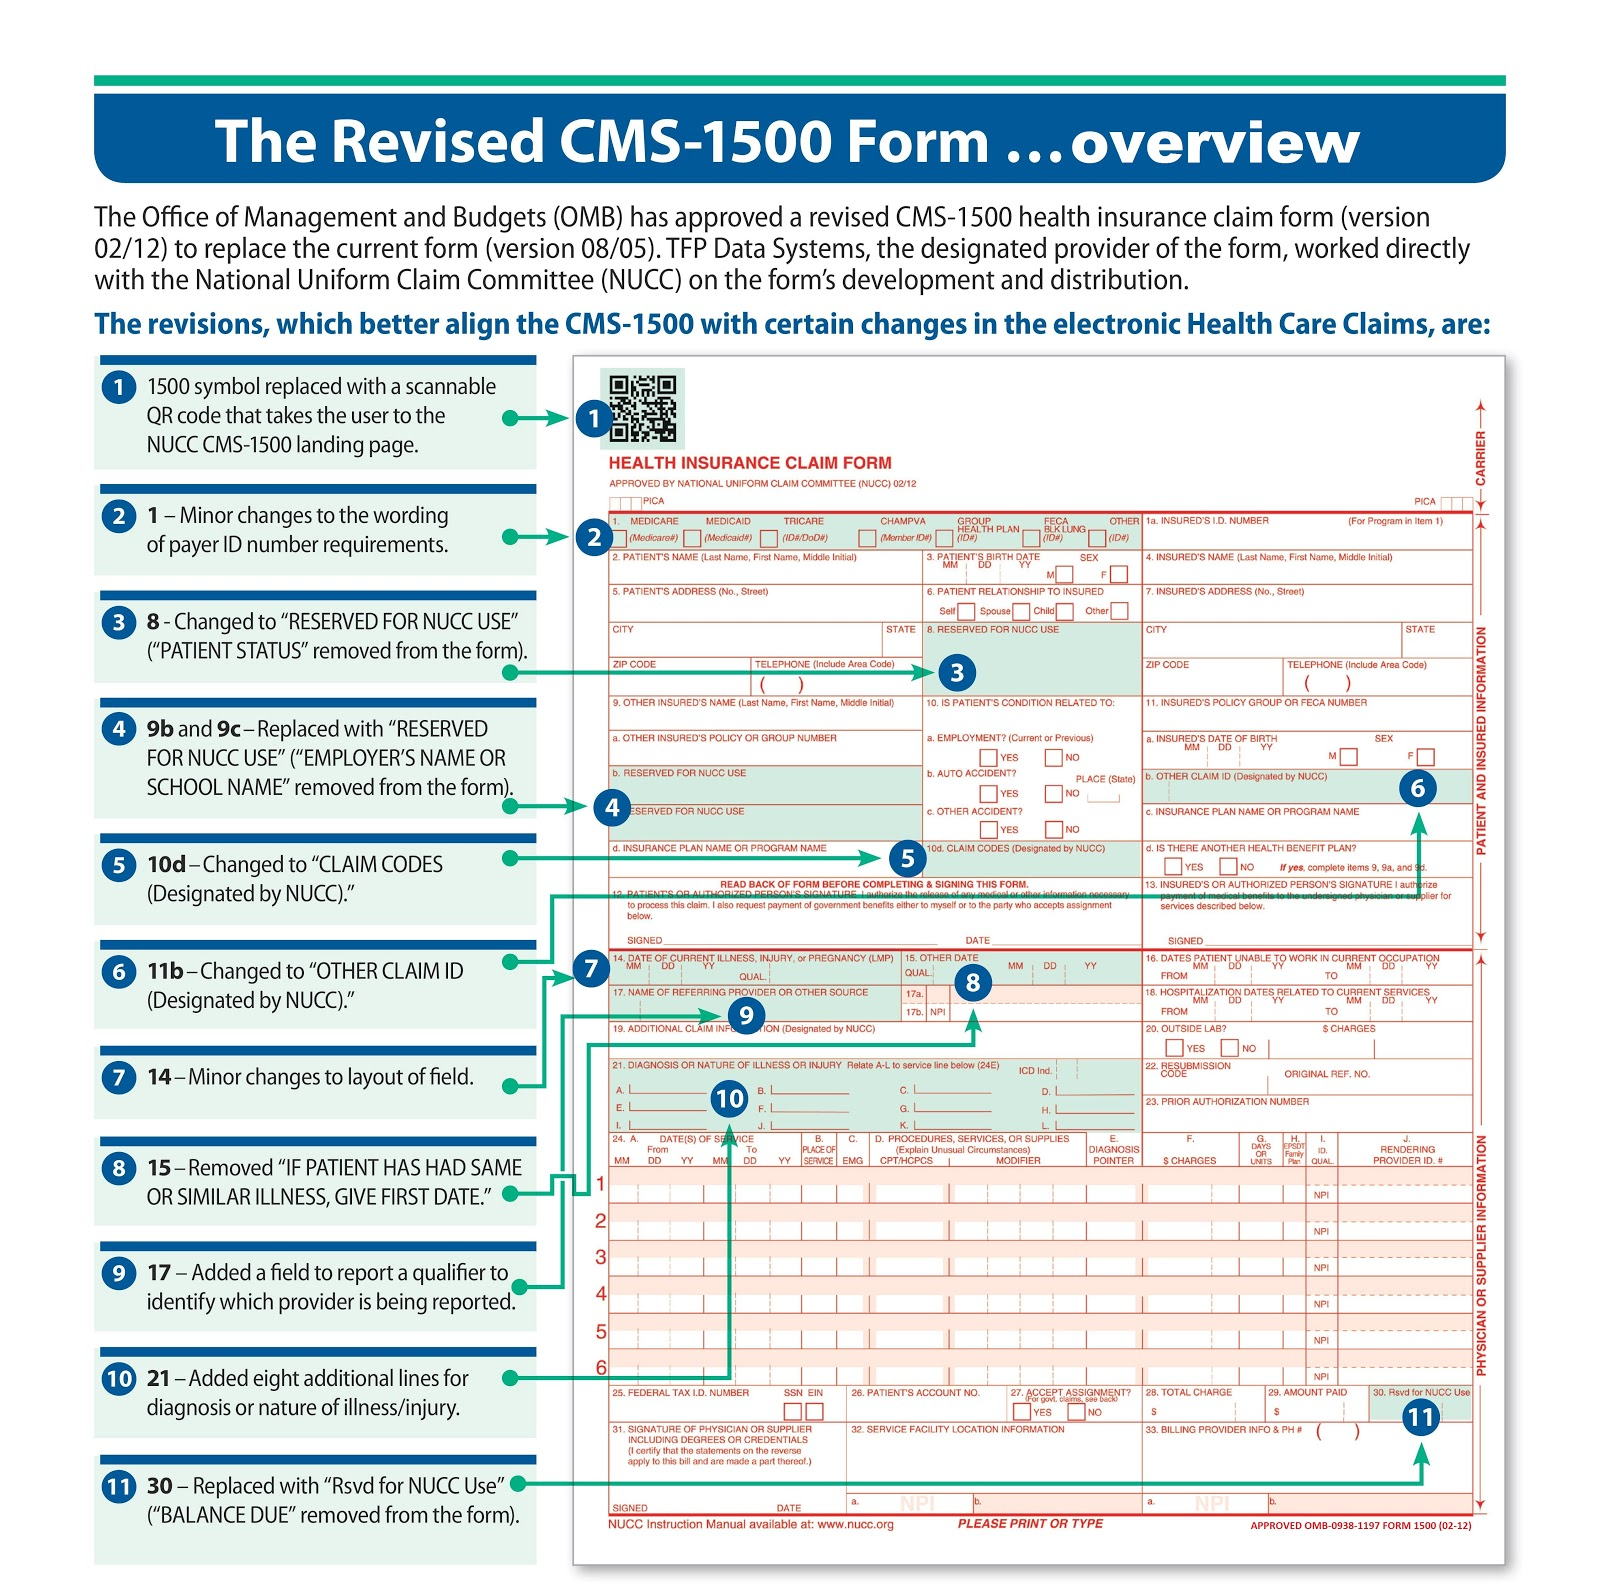 HCFA for 2014, Medical billing codings, Revision of CMS-1500 overview